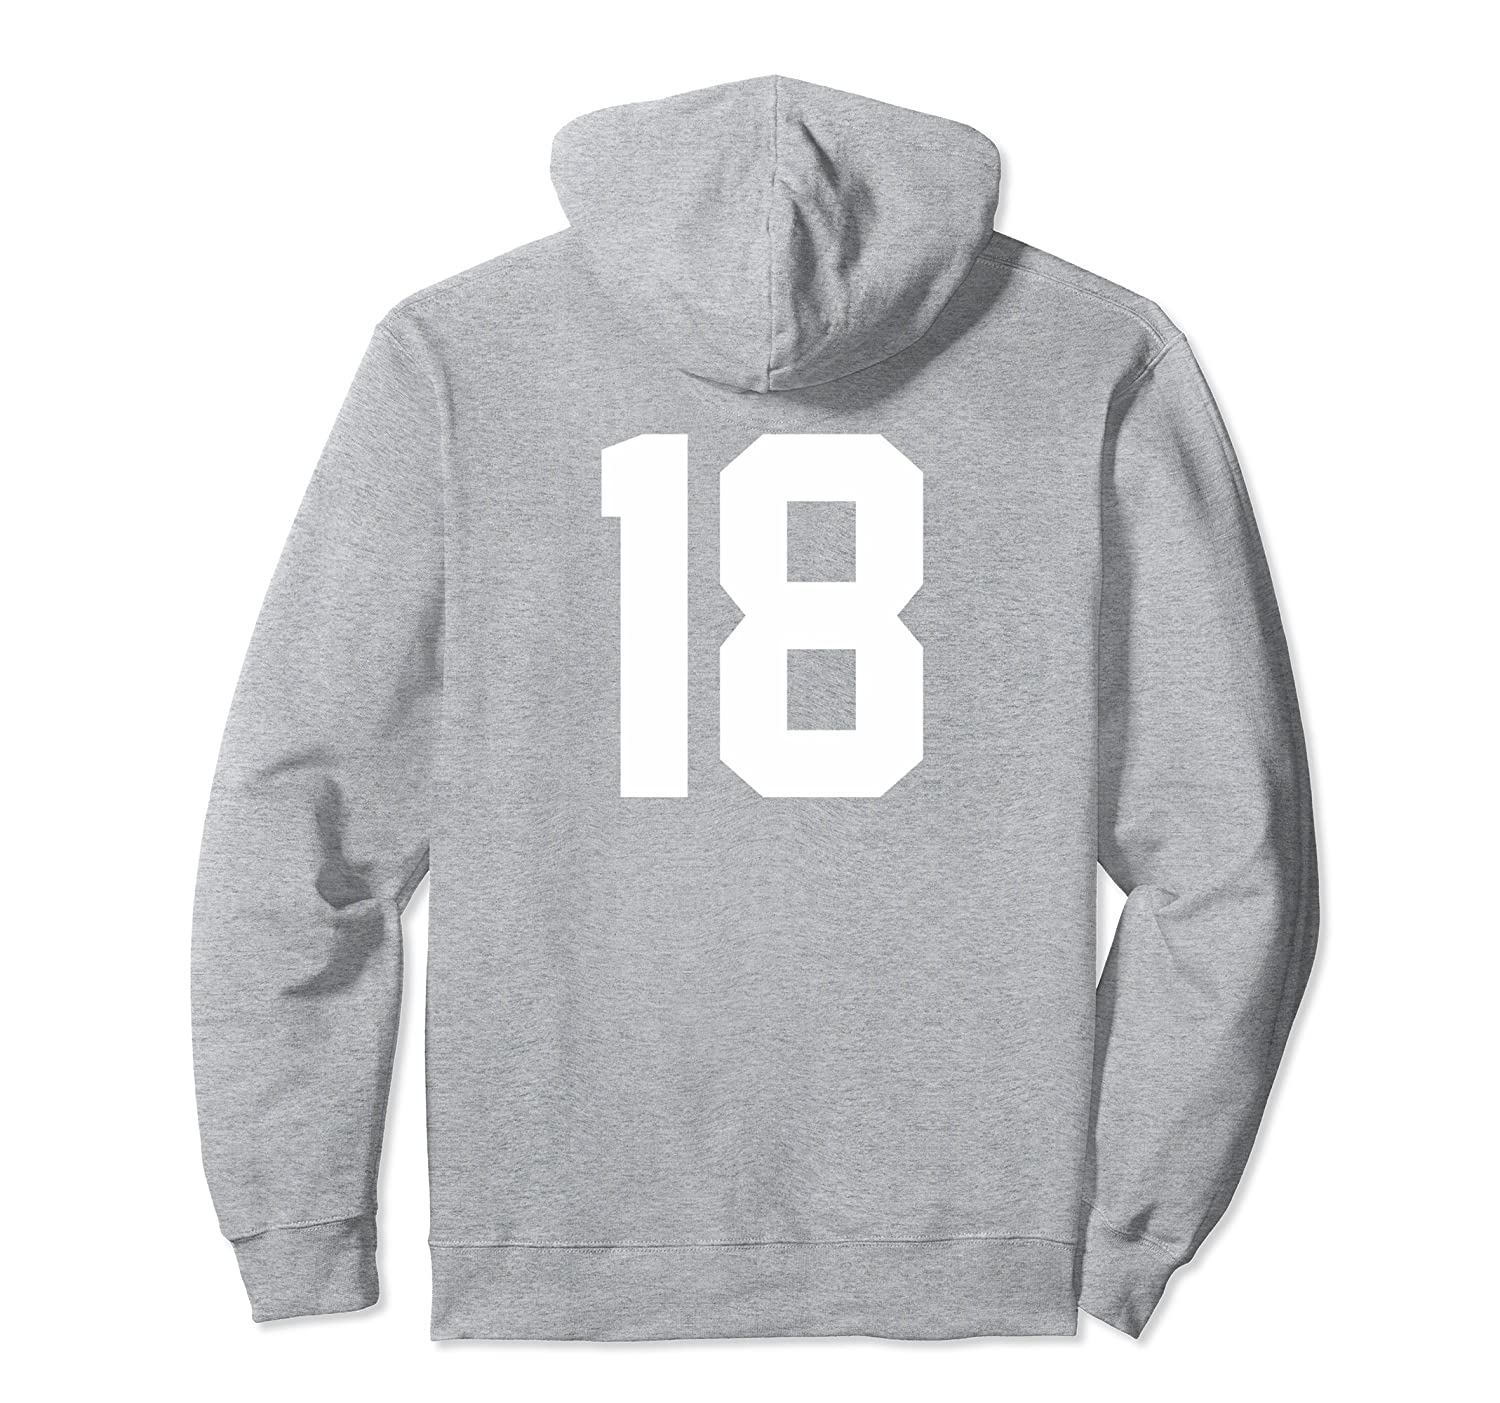 18 Sports Jersey Number on Back Hoodie for Team Player #18-TH